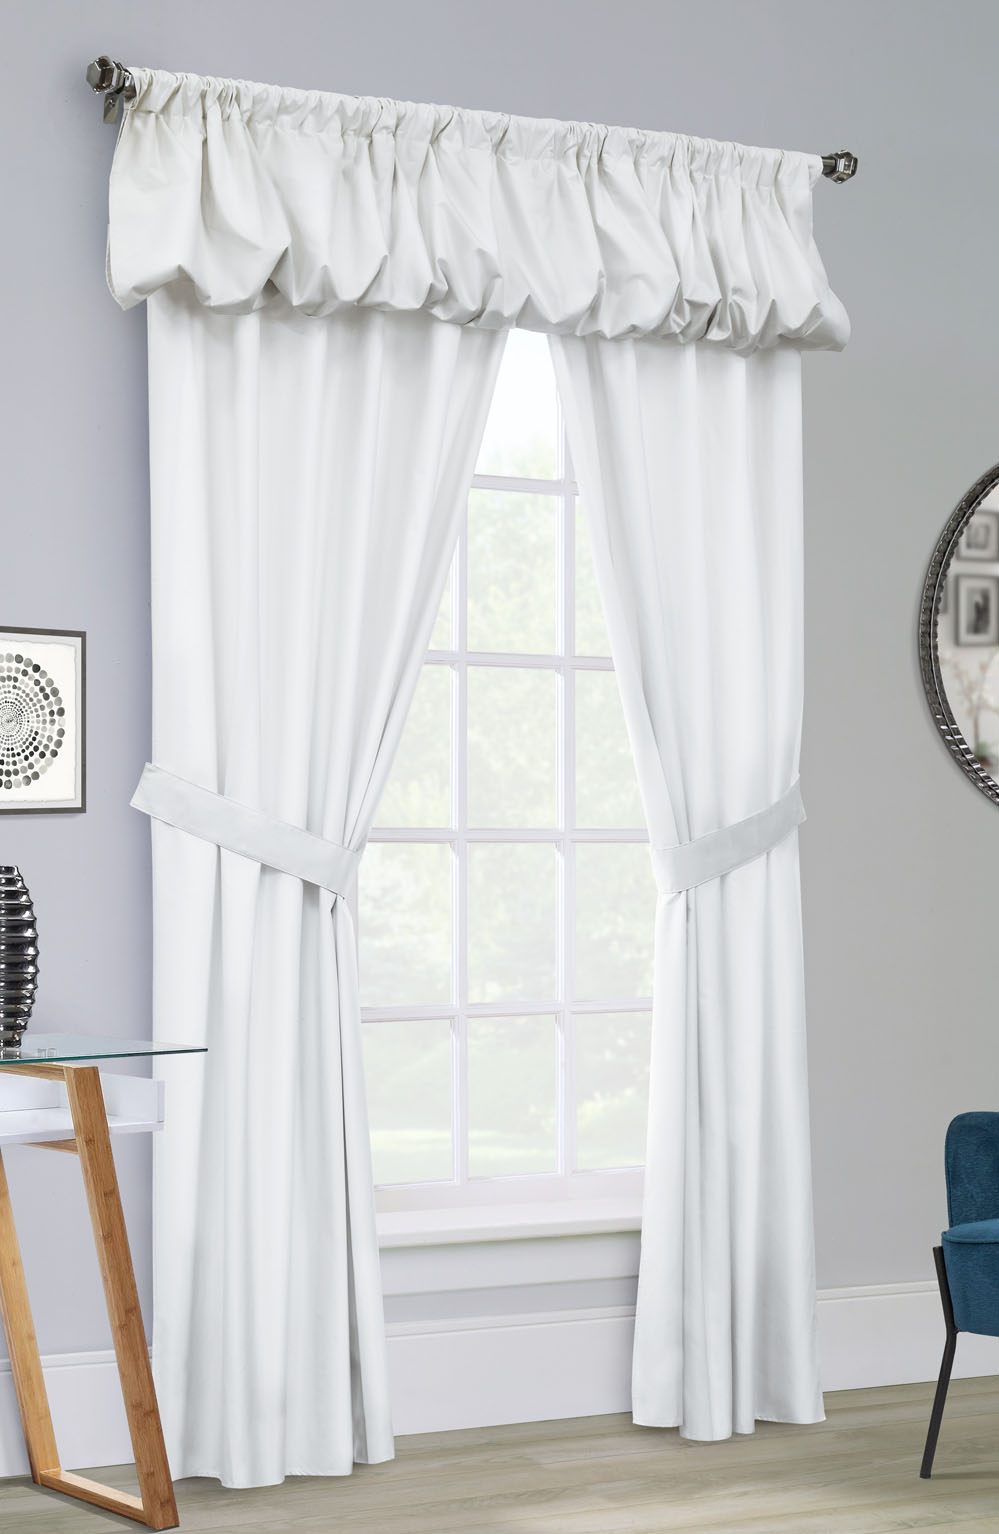 Prescott Insulated Pole Top Curtains, Thermal Curtain + Throughout Prescott Insulated Tie Up Window Shade (View 11 of 20)